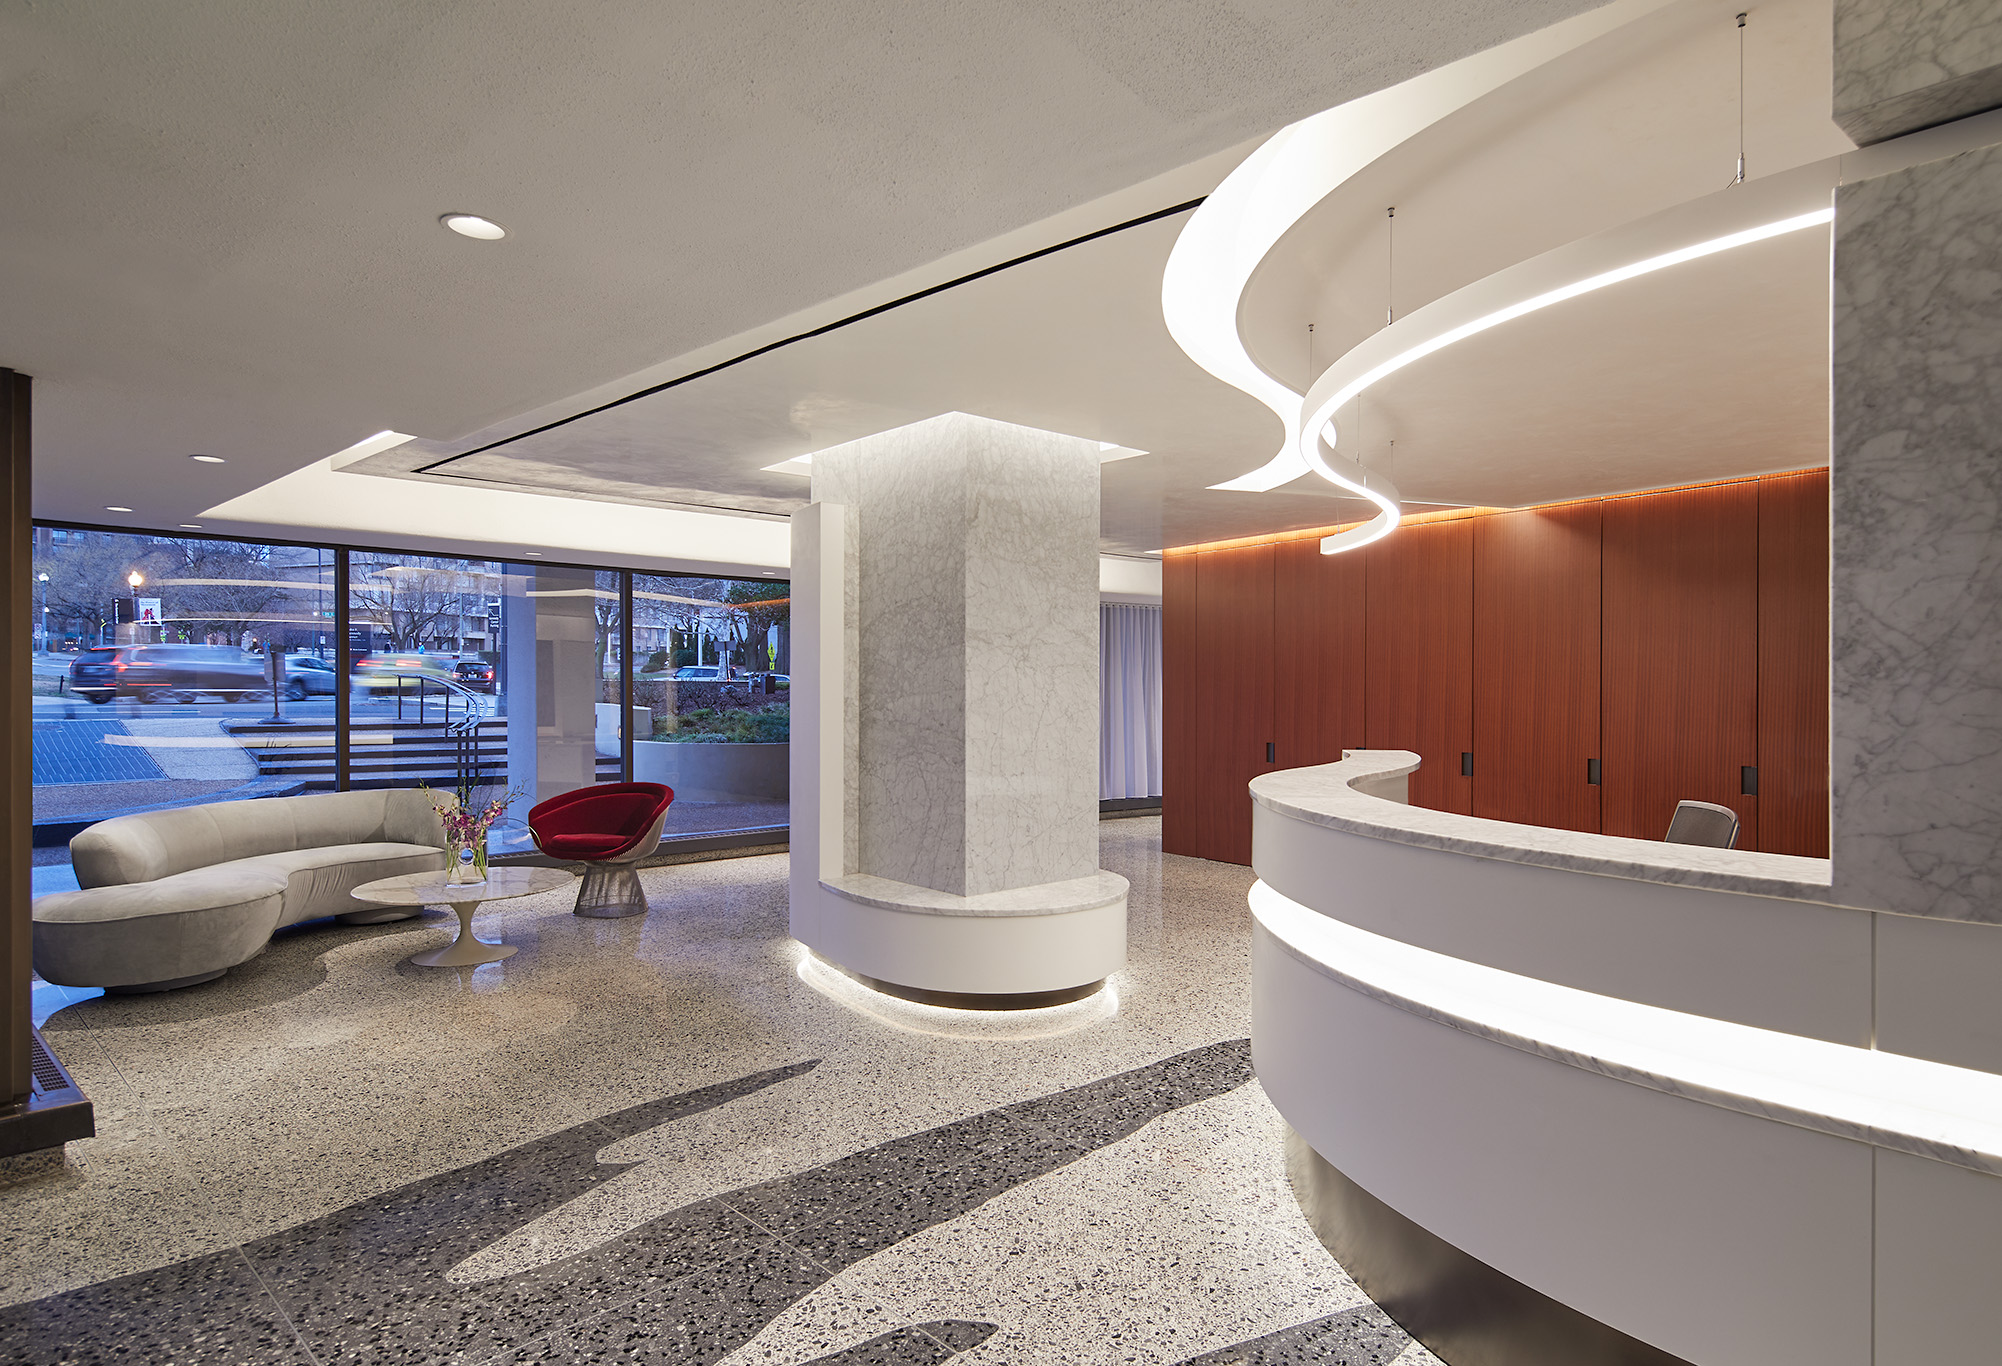 Watergate_Lobby_McInturff_Architects_7_Anice.jpg